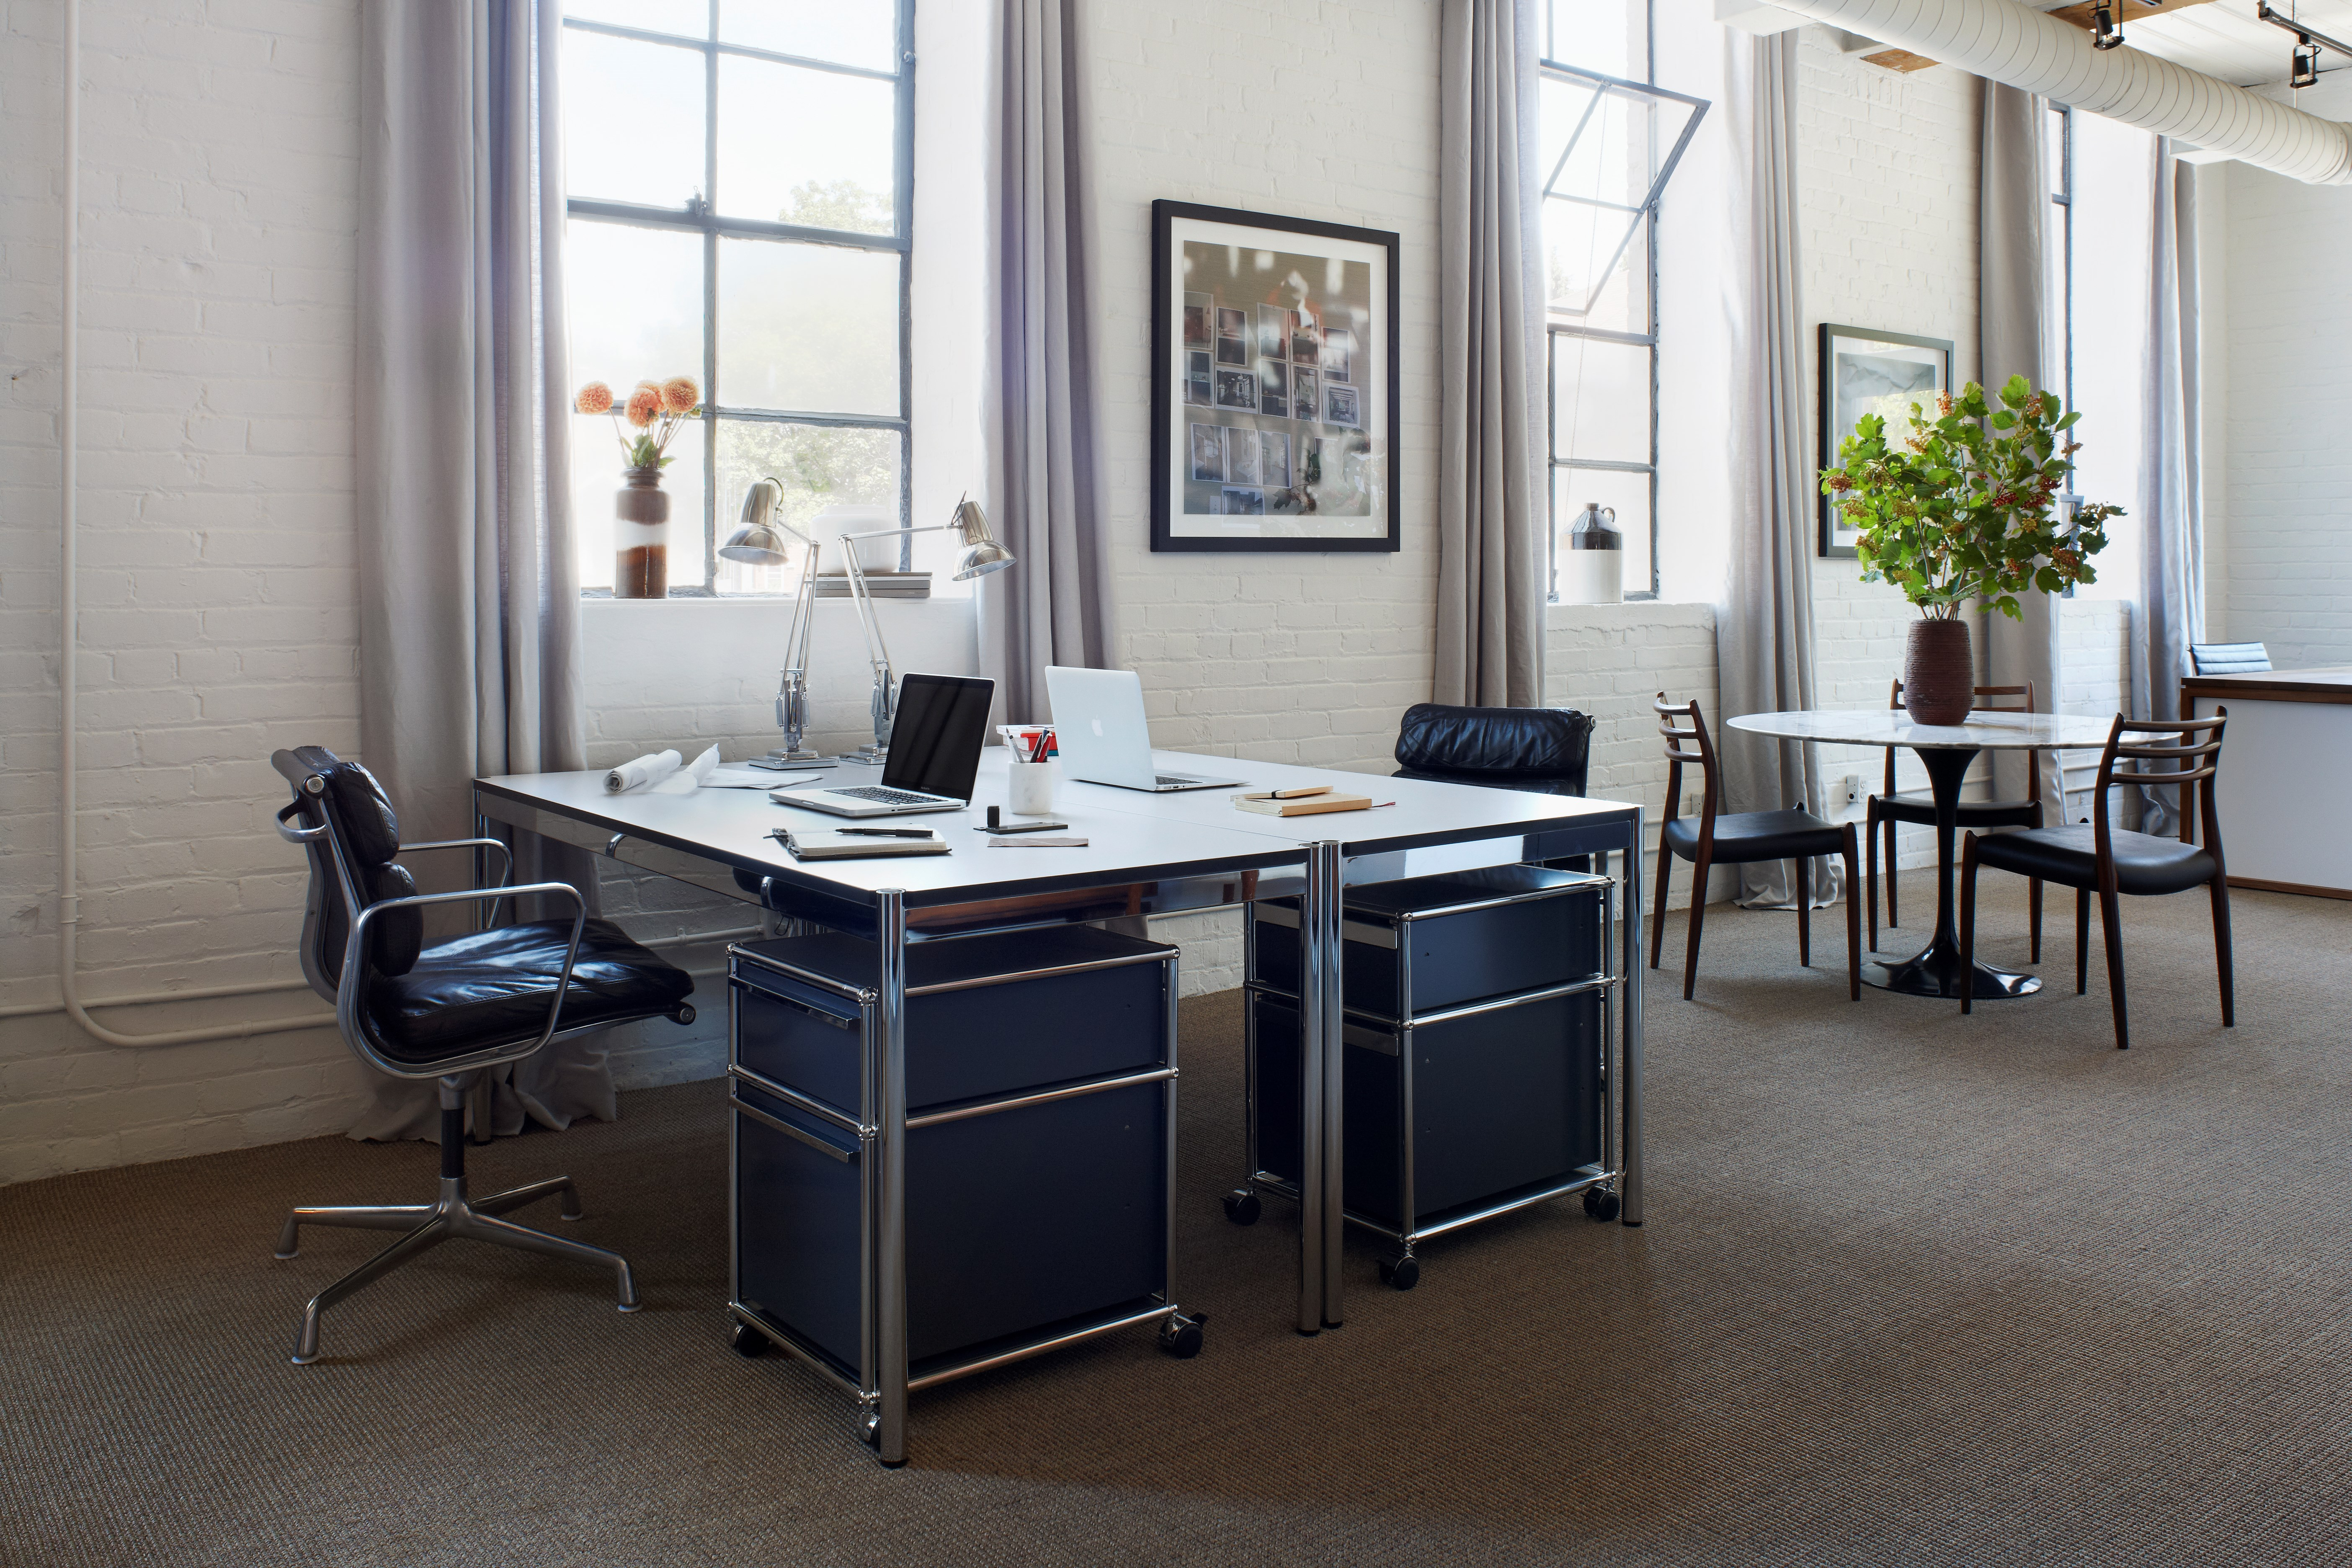 home office design with minimalist grey workstations and leather chairs